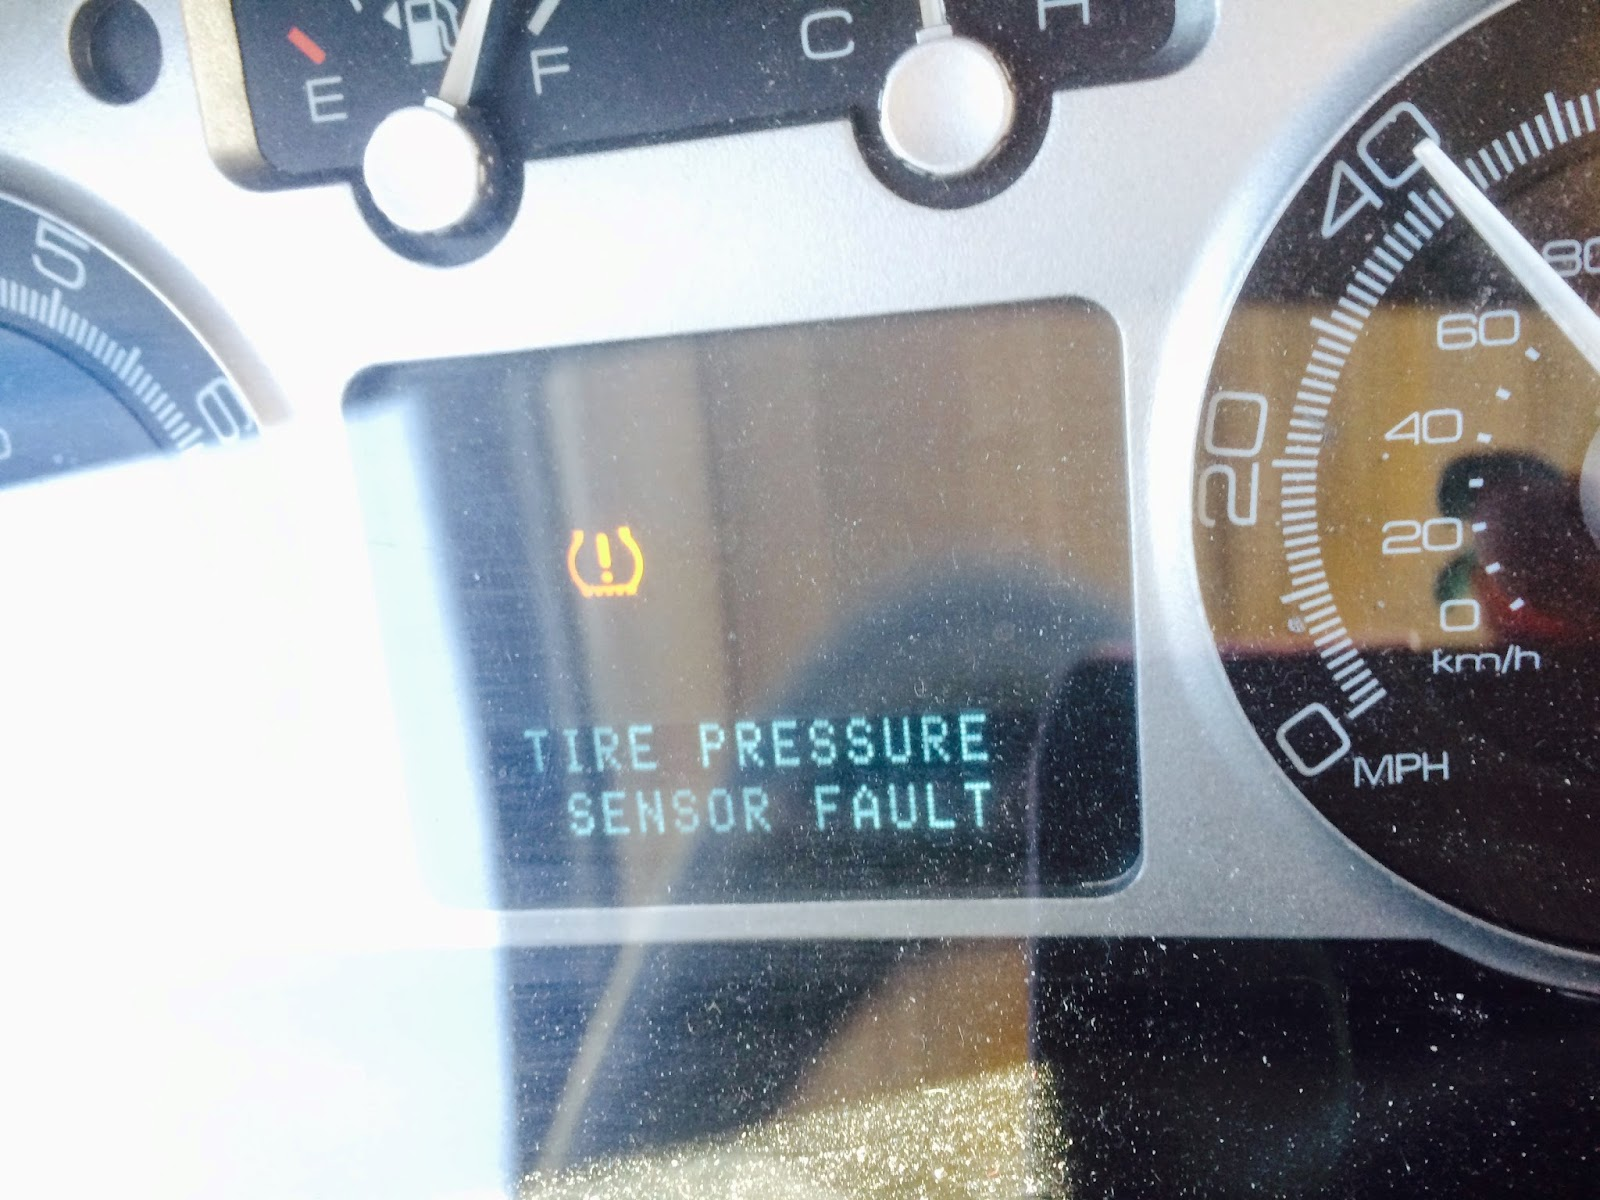 What Does Tpms Mean >> Ford tire pressure sensor fault